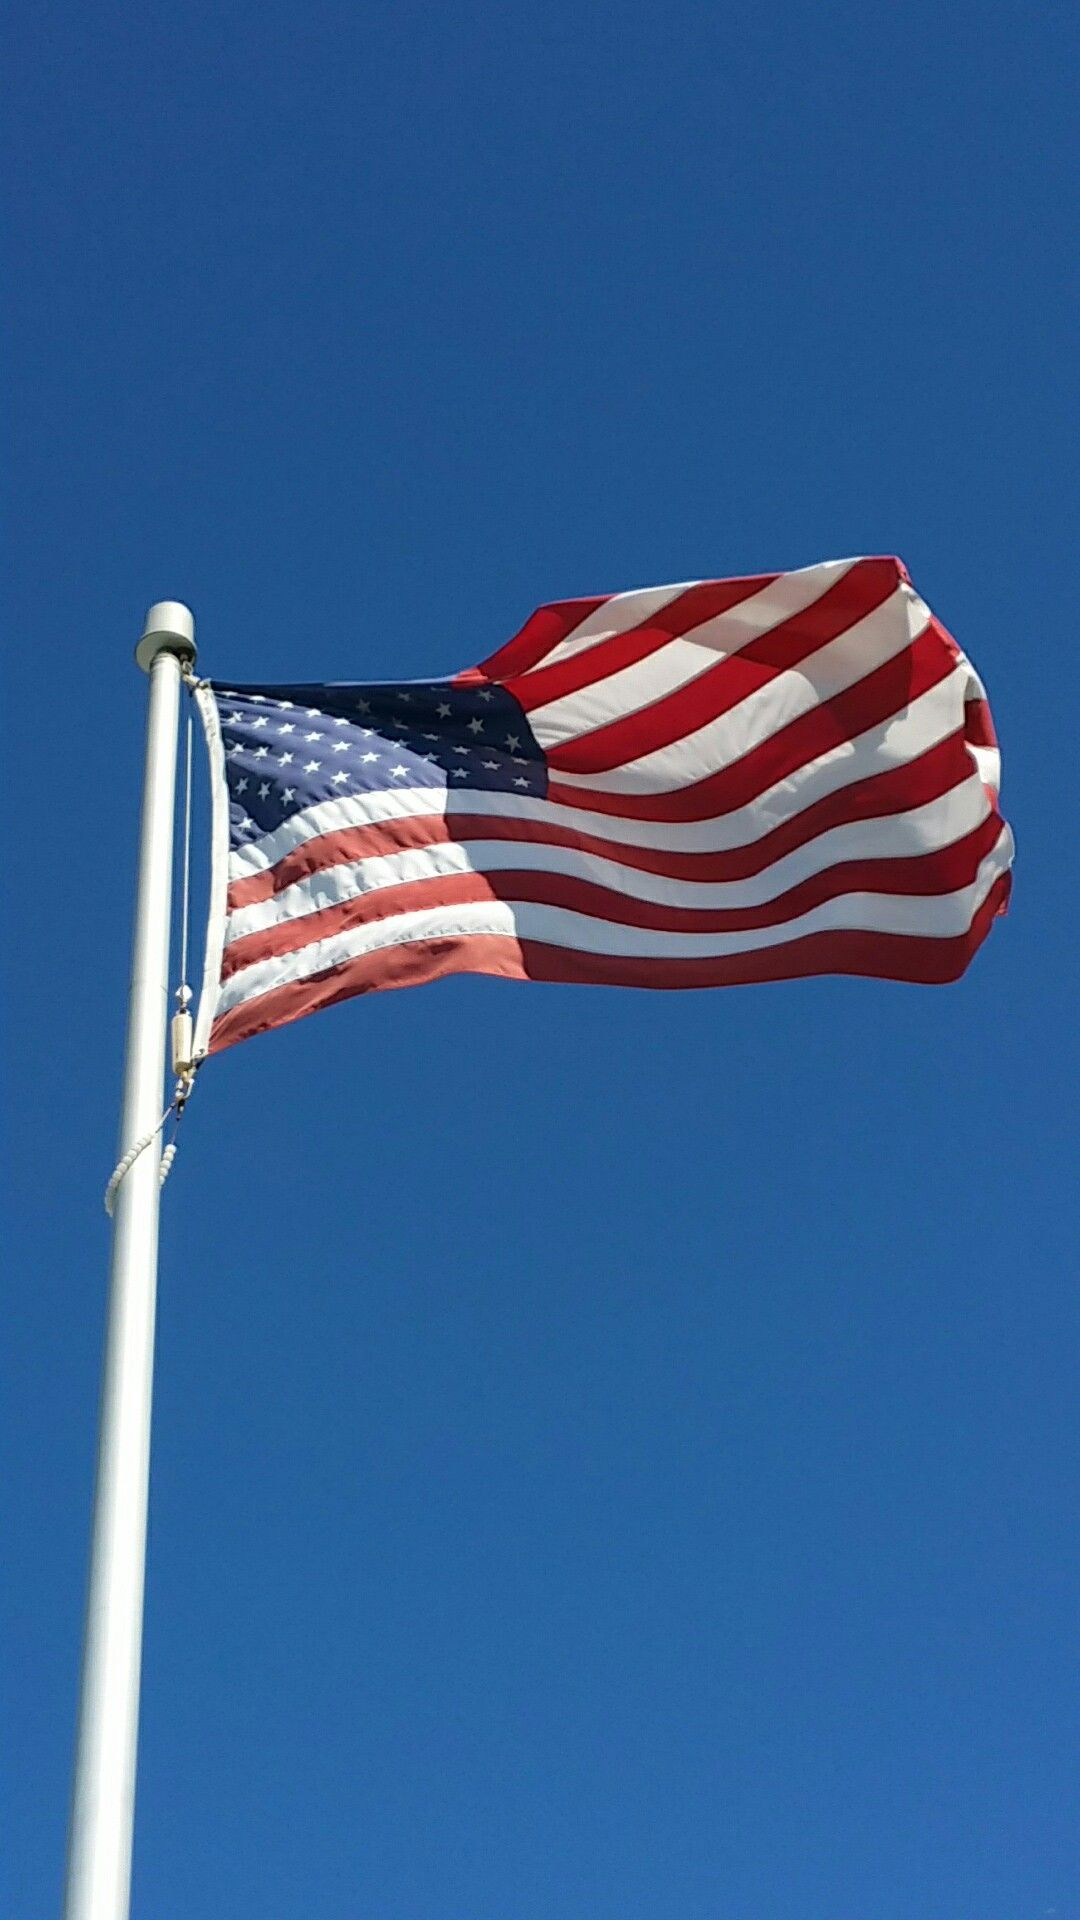 A beautiful sight; another day that Old Glory flies over a free nation. I see a symbol of that freedom and the sacrifice so many have made to keep it so. To all the haters: keep on hating, cause as long as it's flying you're free to display your ignorance for all the world.